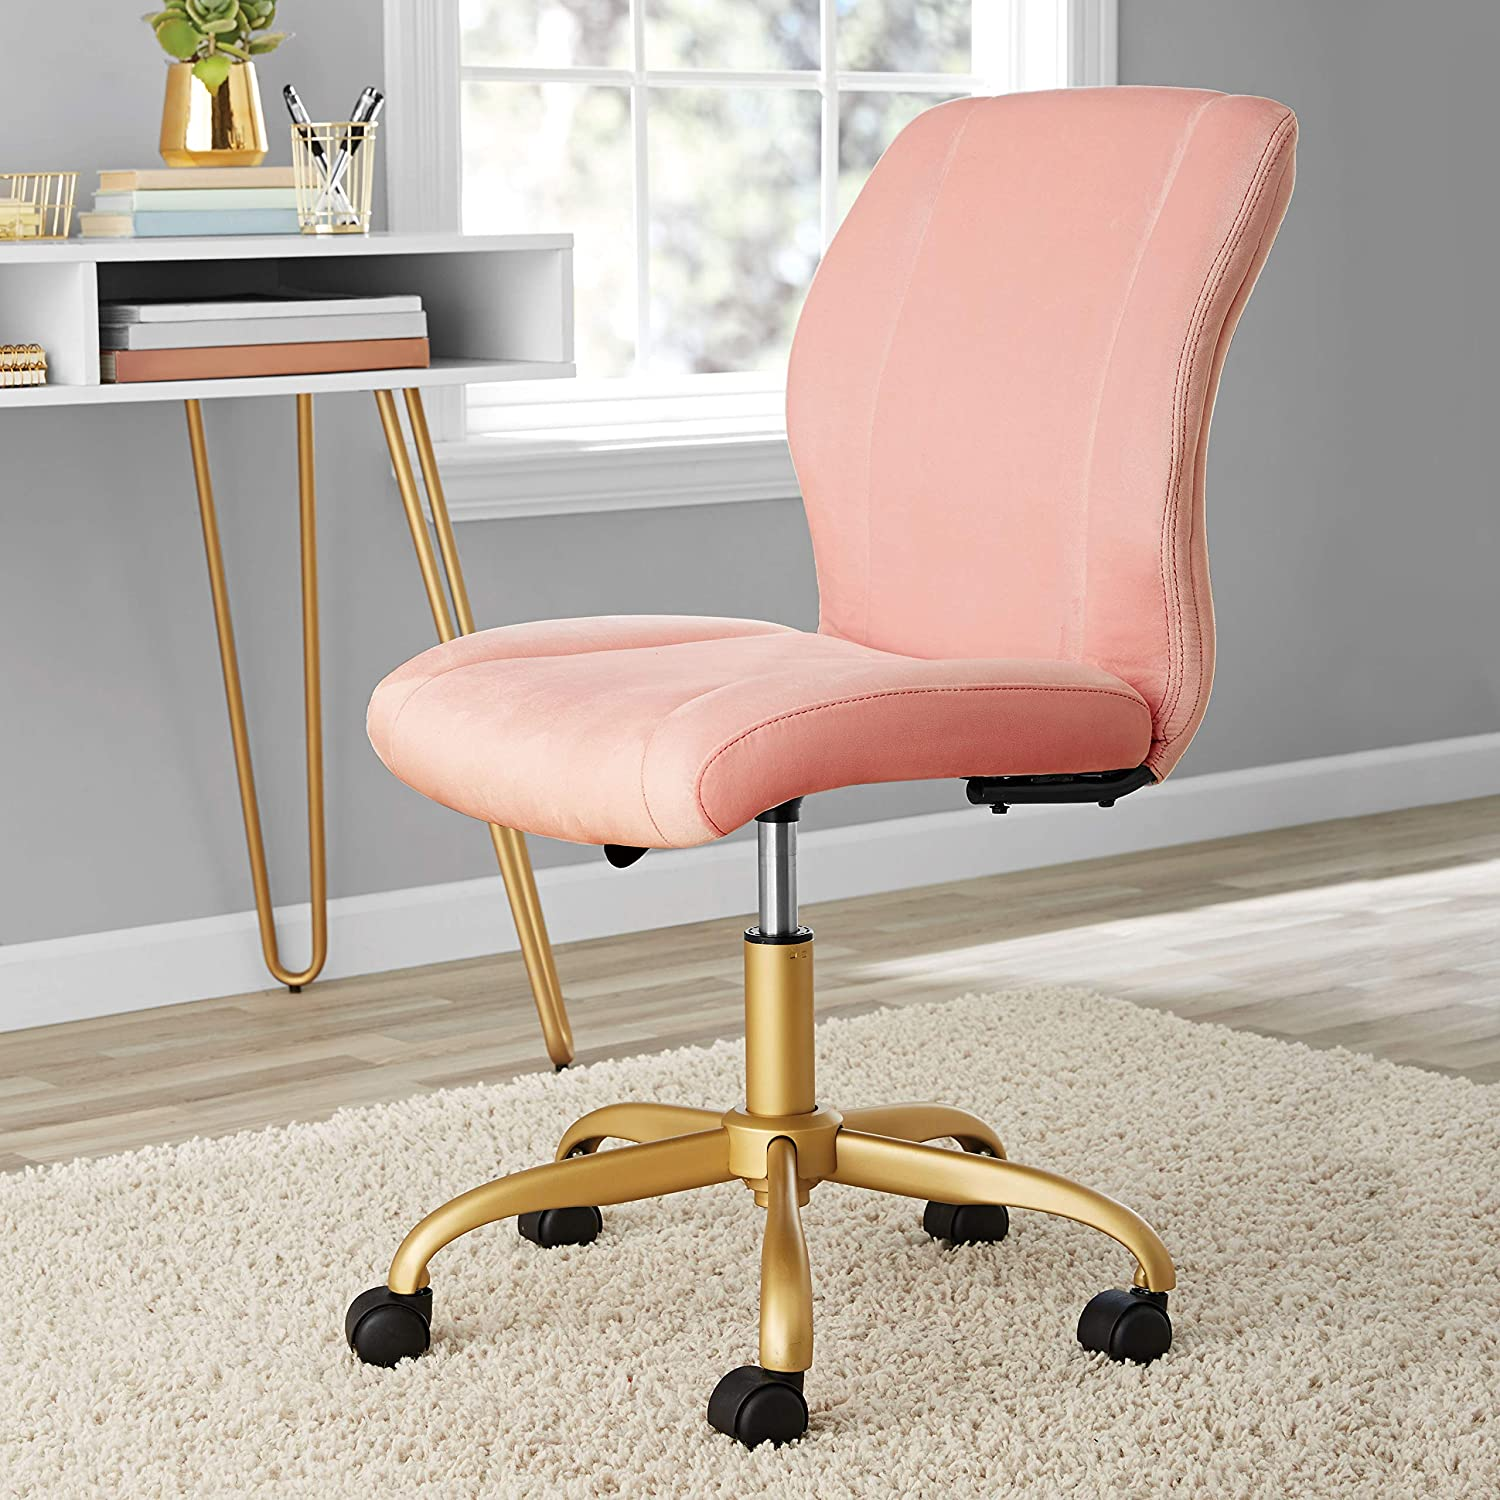 12 Gold Office Chairs That'll Make You Feel Like Royalty